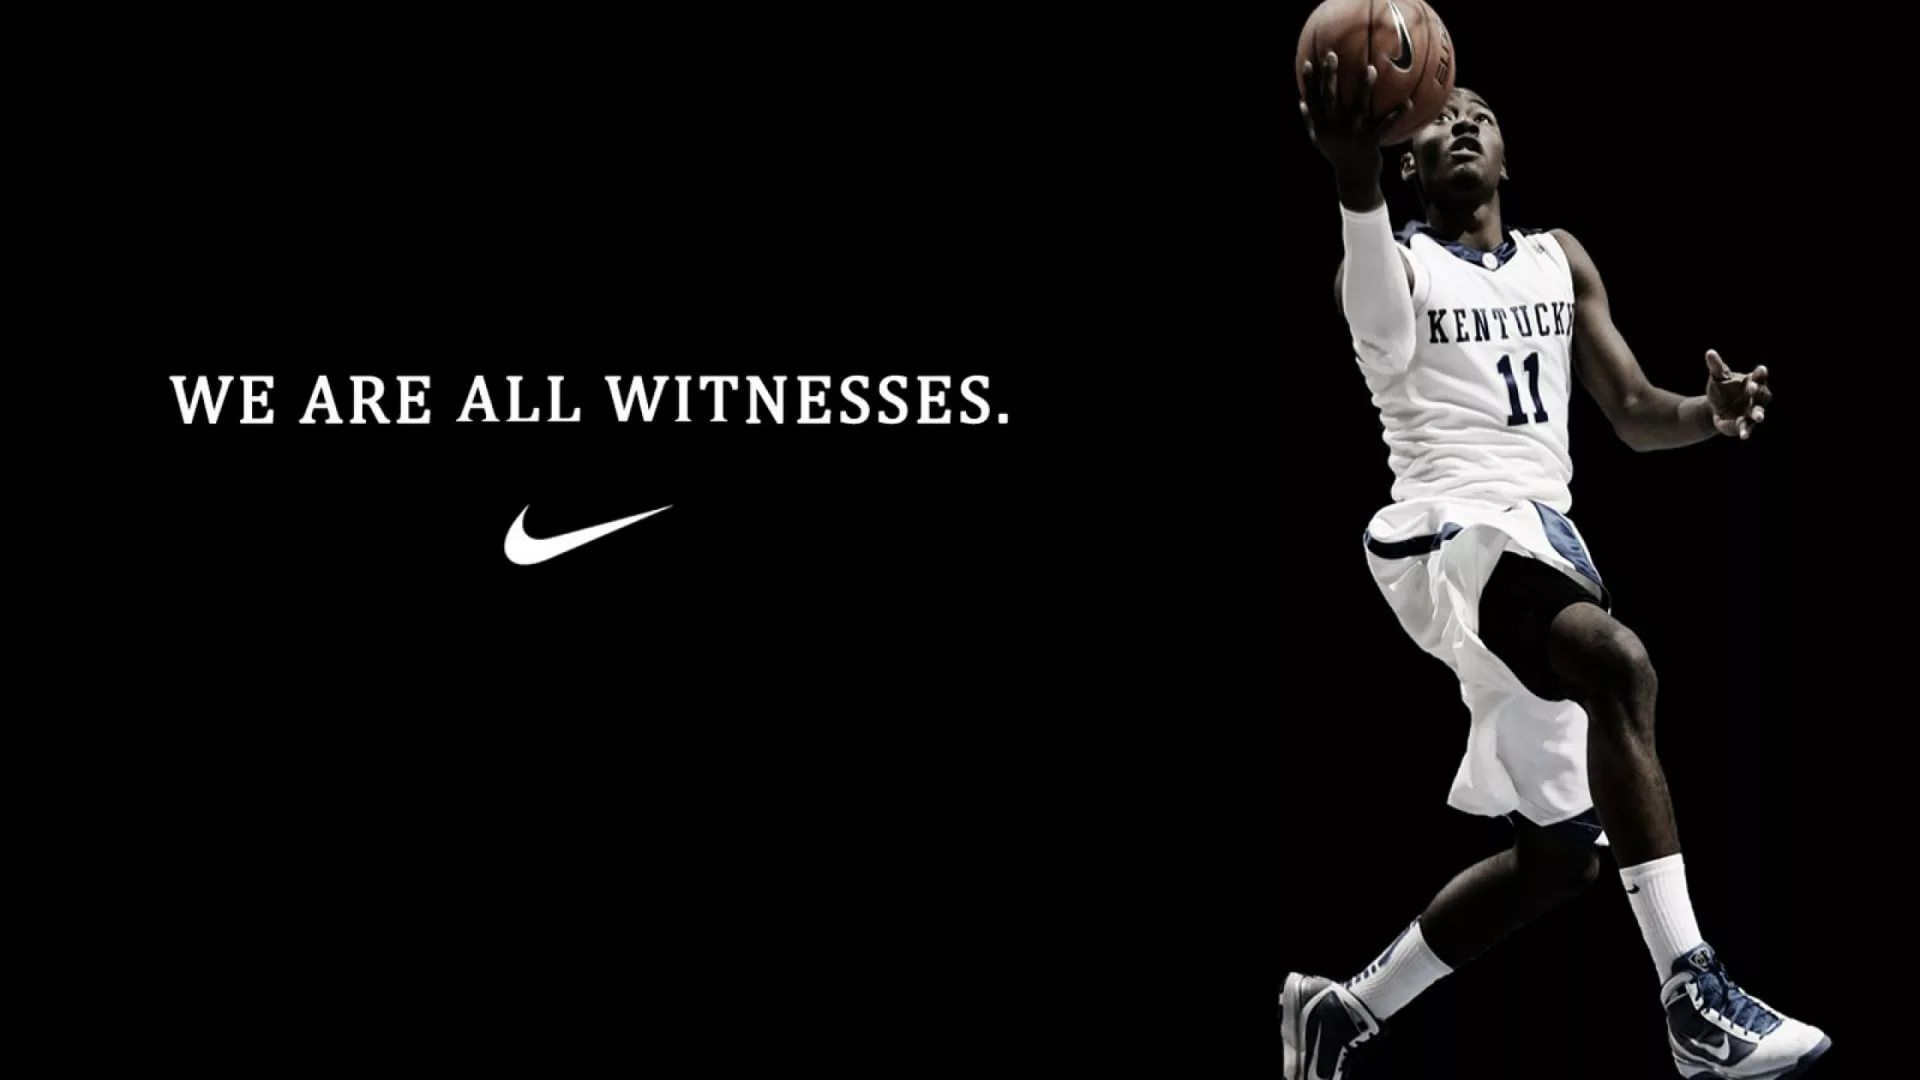 Nike Basketball Wallpaper Picture